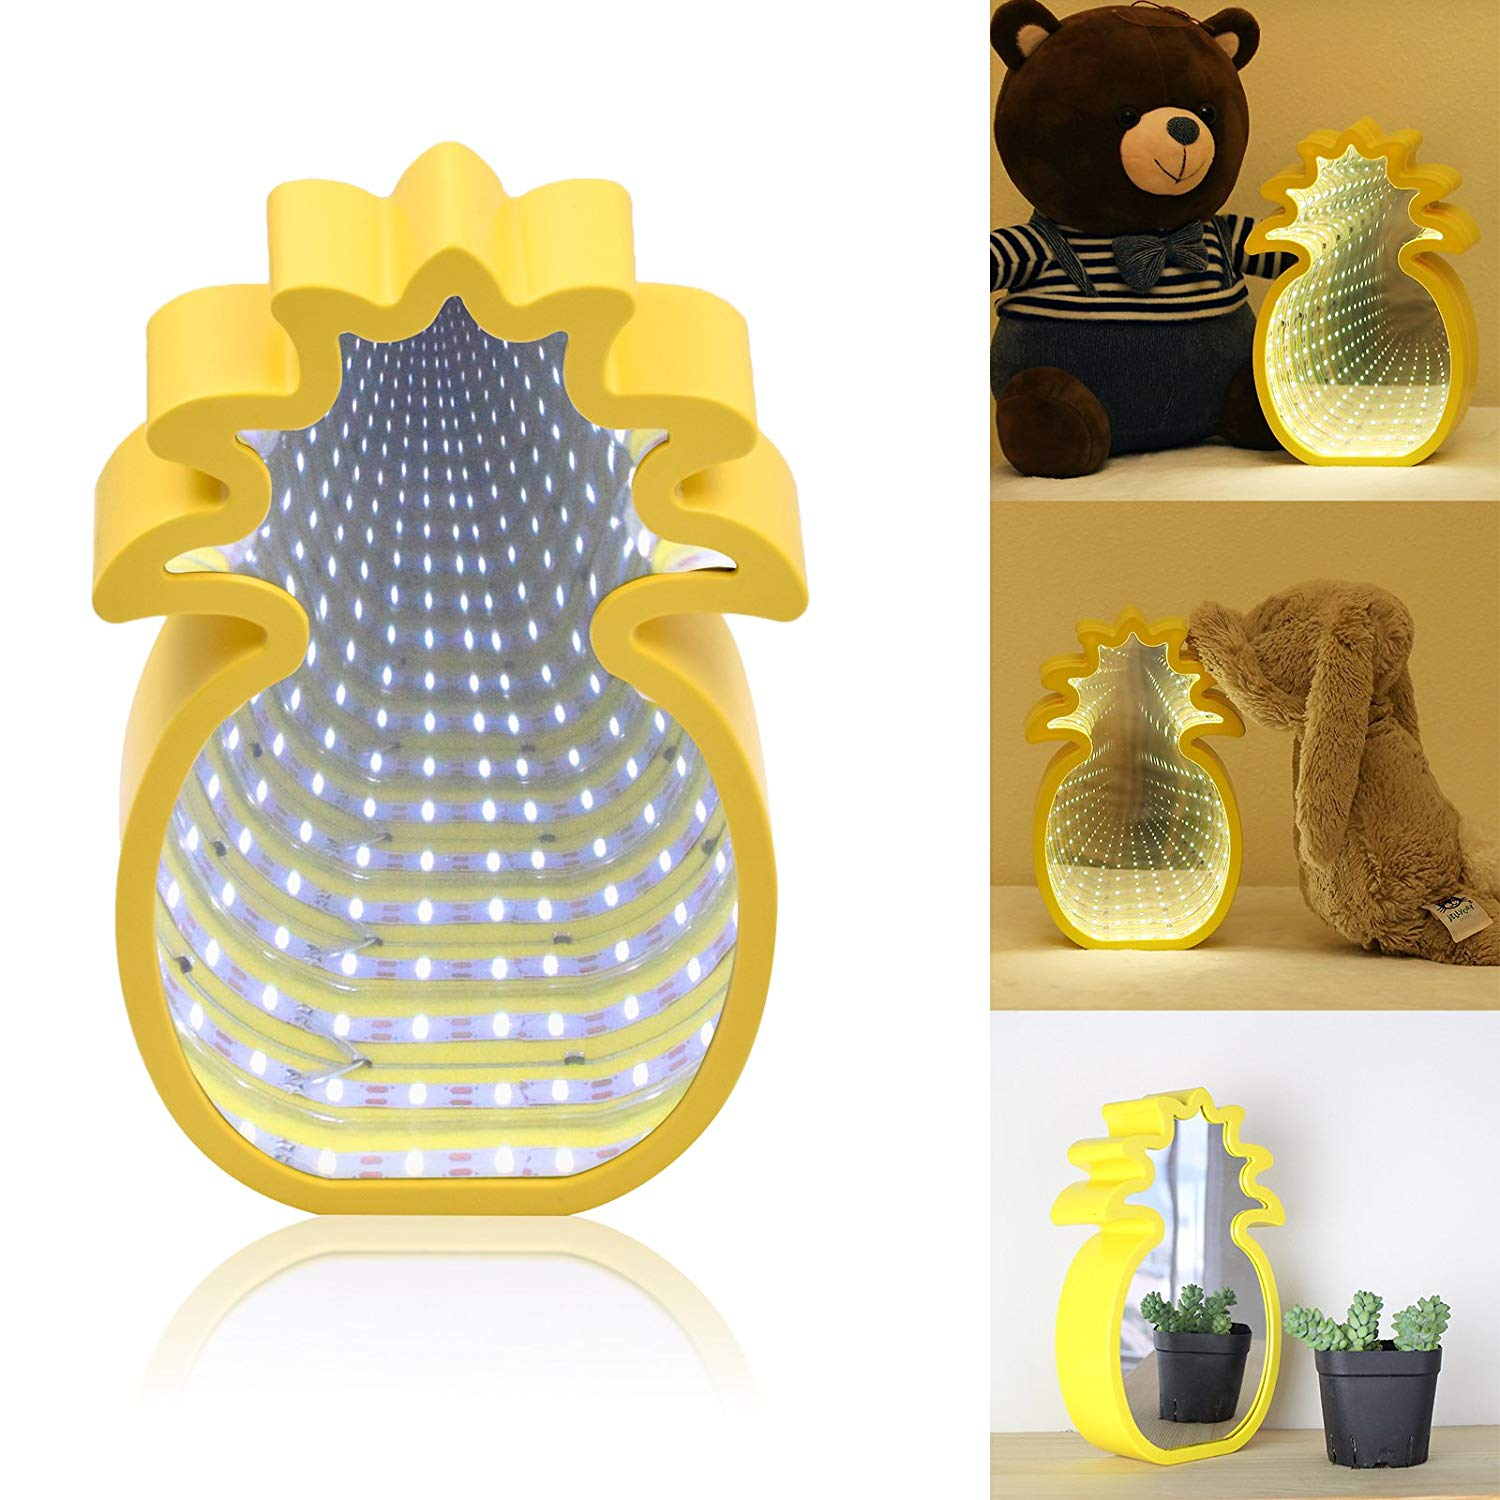 LED Tunnel Light Magic Infinity Mirror Light Battery Operated for Wedding, Birthday Party, Night Light, Gift, Indoor DIY Decoration (White, Pineapple Light)